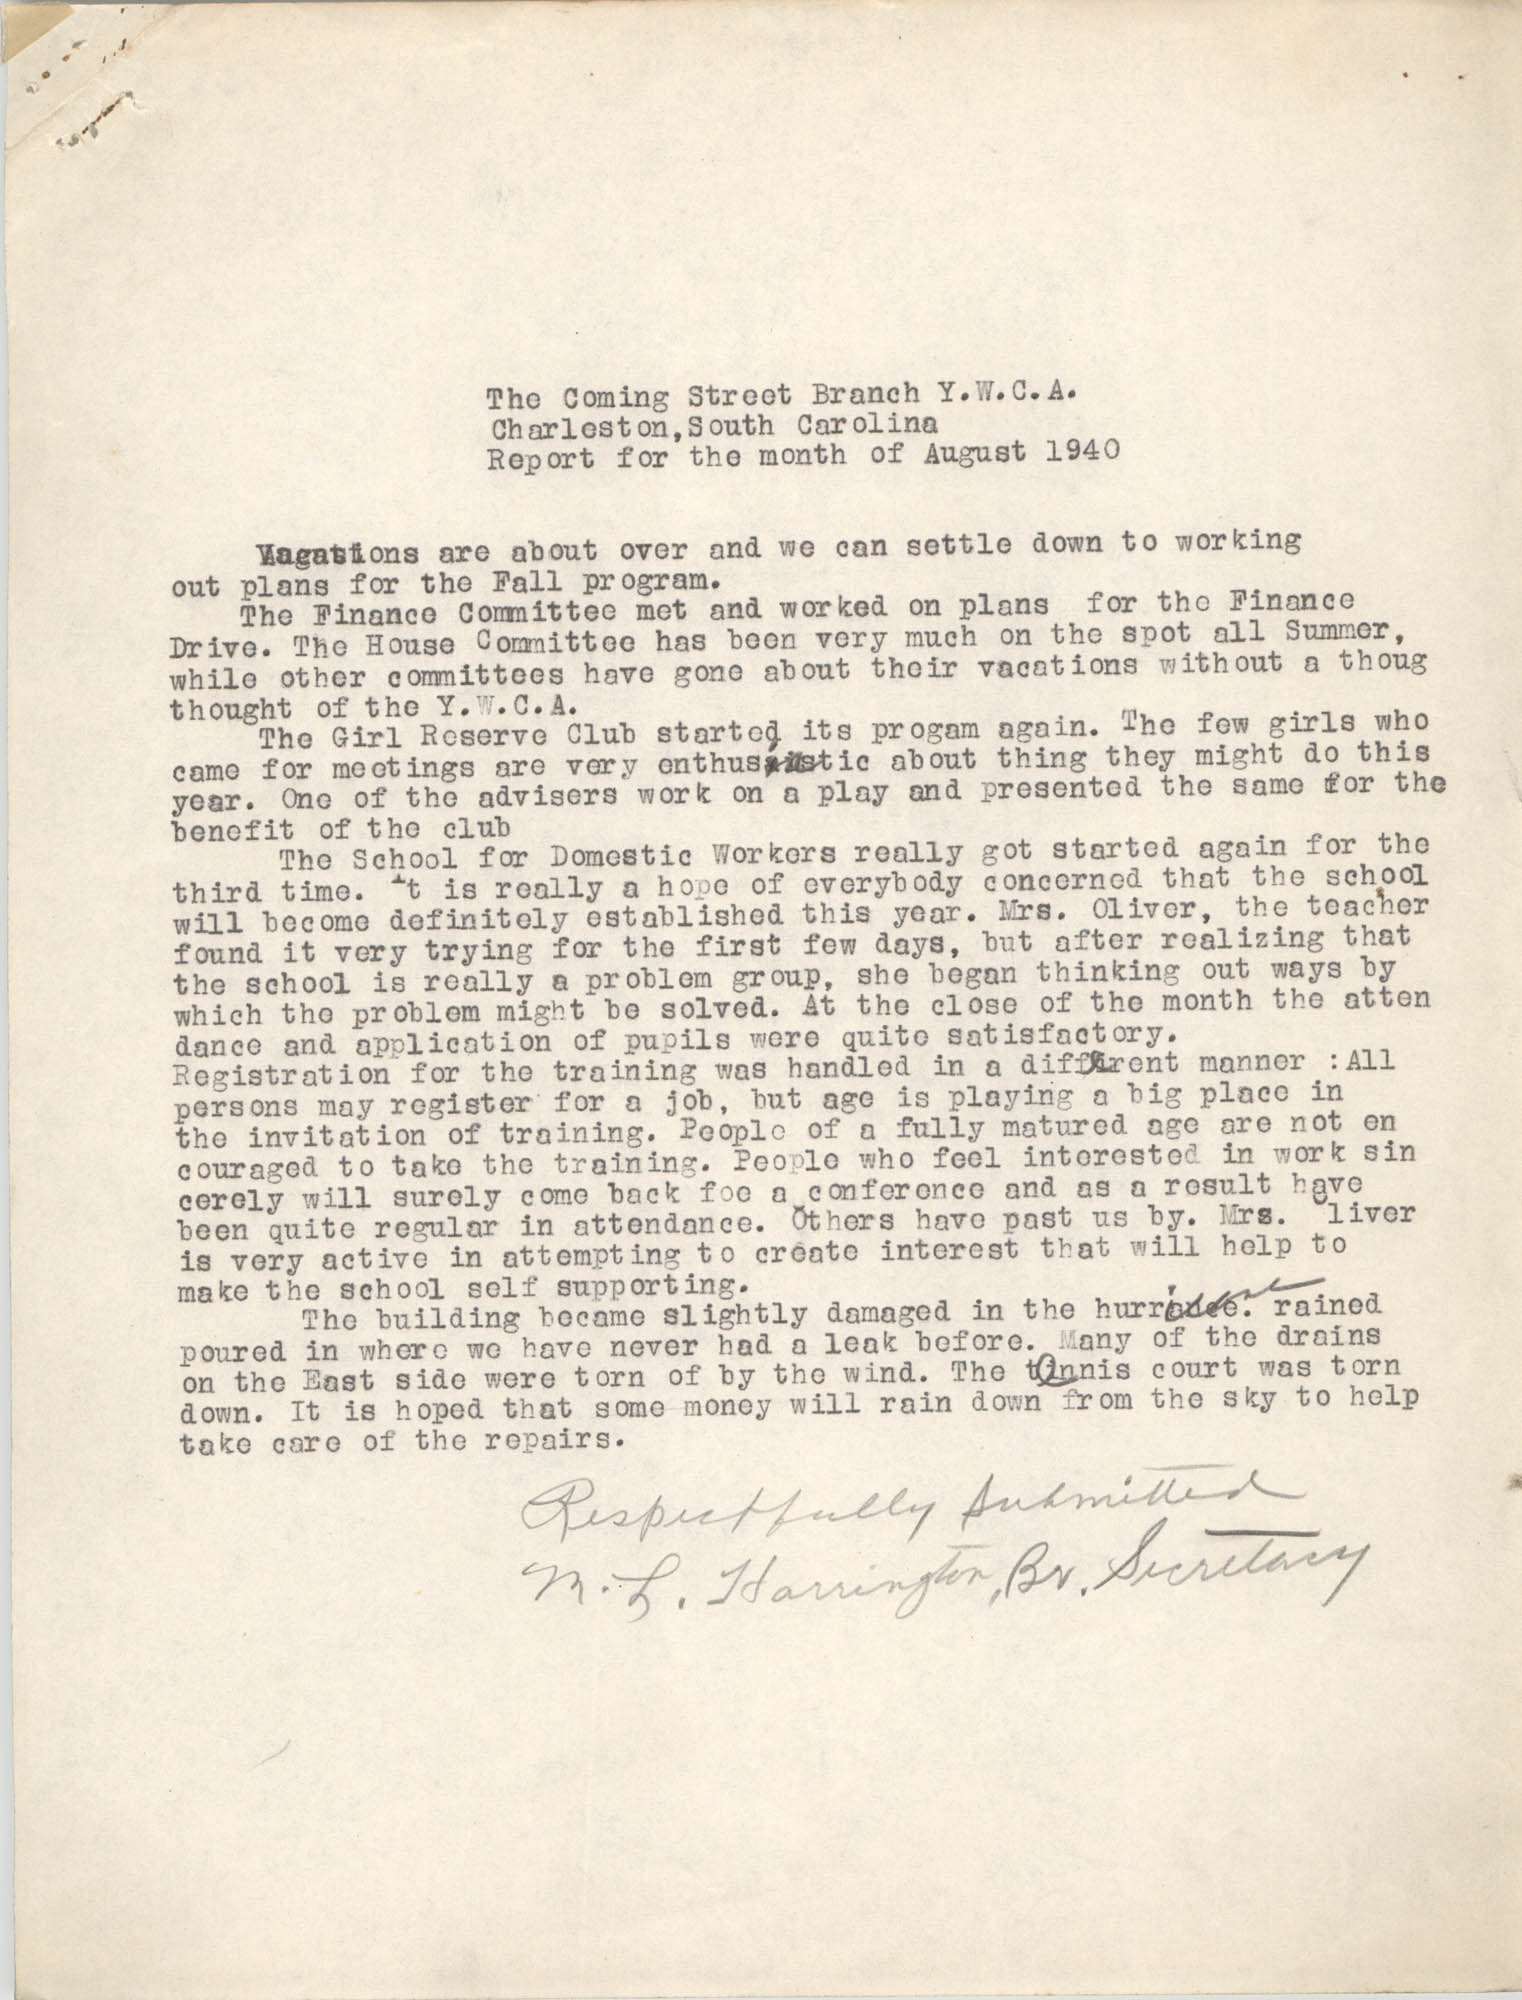 Monthly Report for the Coming Street Y.W.C.A., August 1940